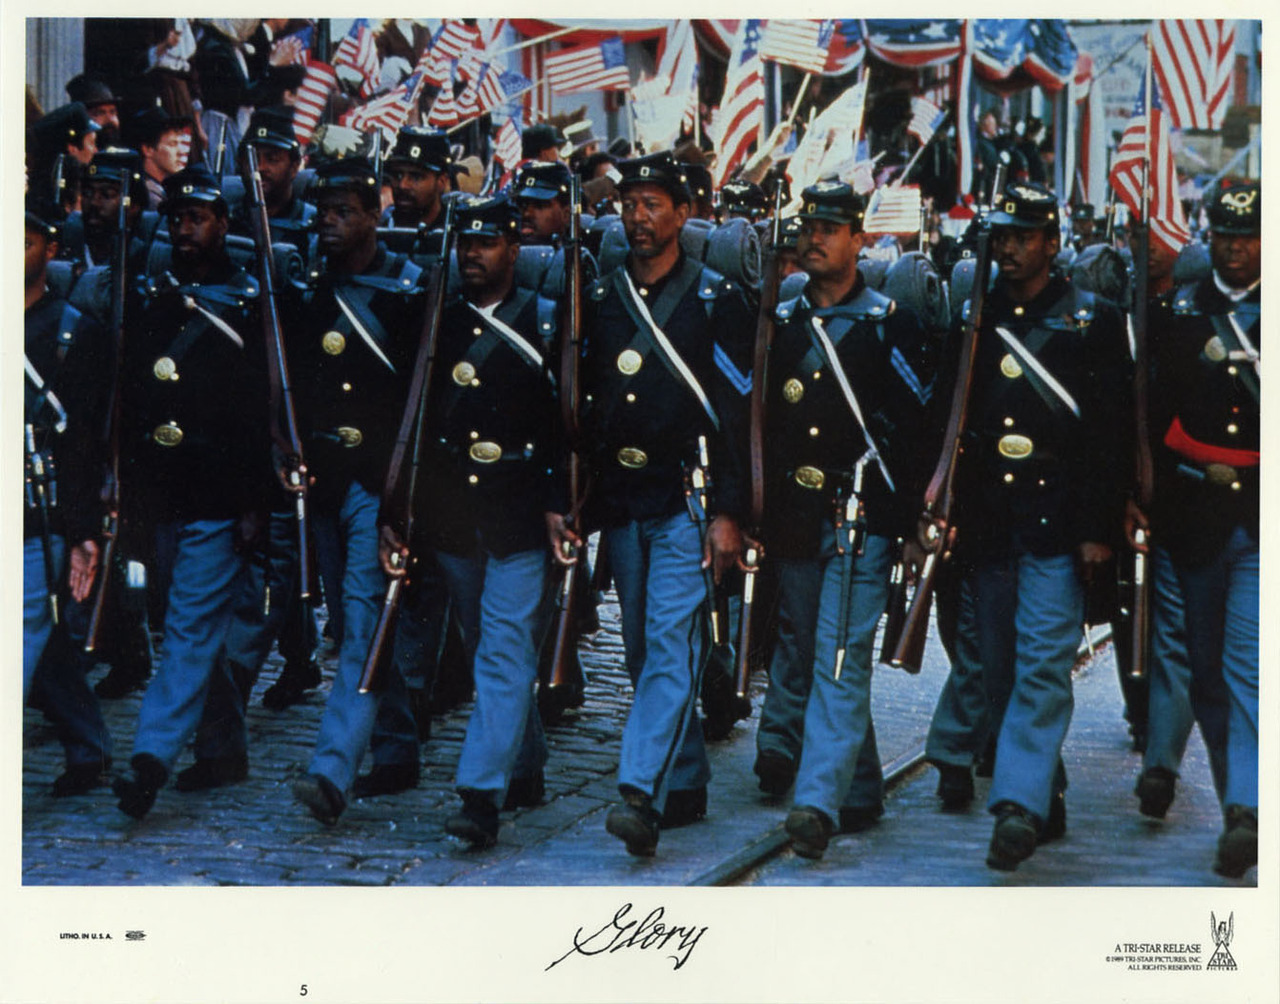 the story of civil war as portrayed in the 1989 film glory A film that views the civil war from an unusual perspective, 1989's glory provides a moving and compelling look at director edward zwick's usual themes of bravery and freedom and does so in a passionate and entertaining manner.